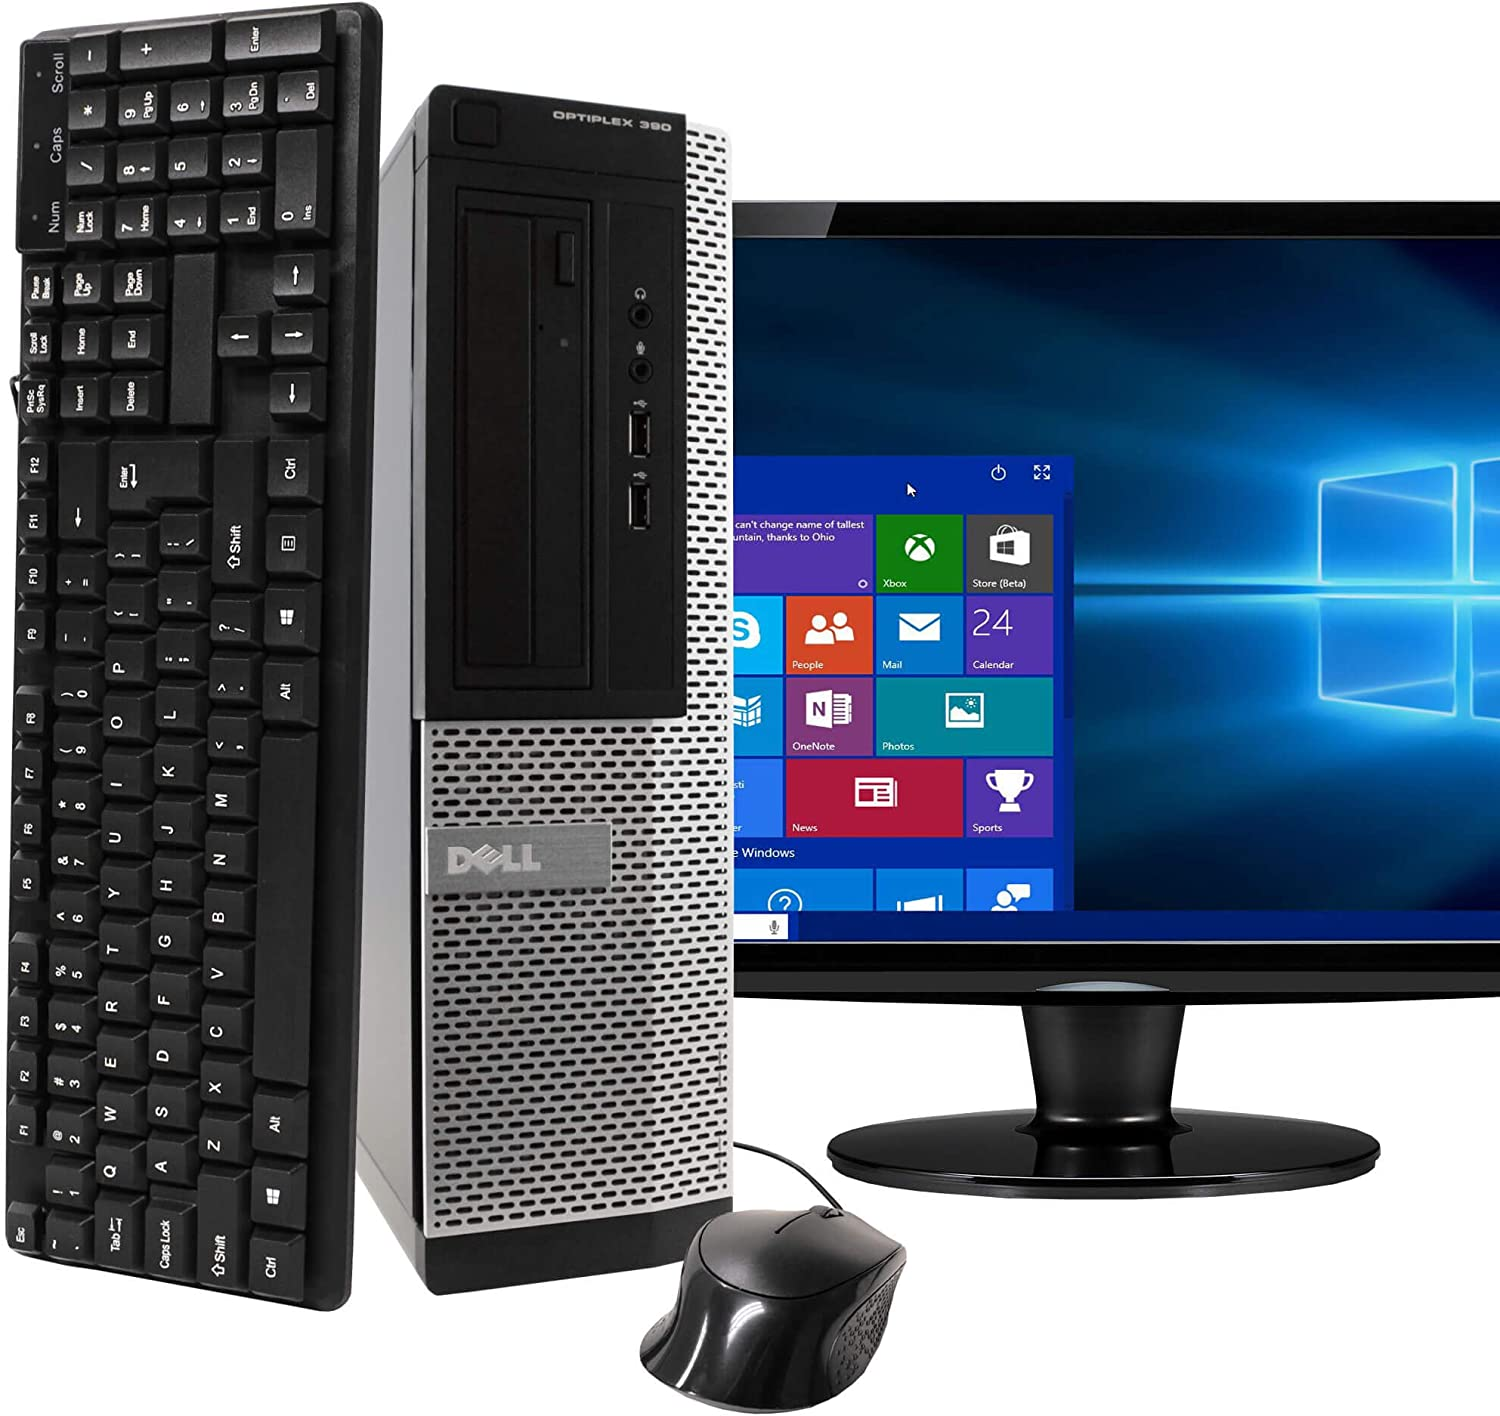 DELL Desktop Computer Package with 22in Monitor(Brands May Vary)(Core I5 Upto 3.4GHz,8GB,1T,VGA,HDMI,DVD,Windows 10-Multi Language Support-English/Spanish/French) (CI5)(Renewed)